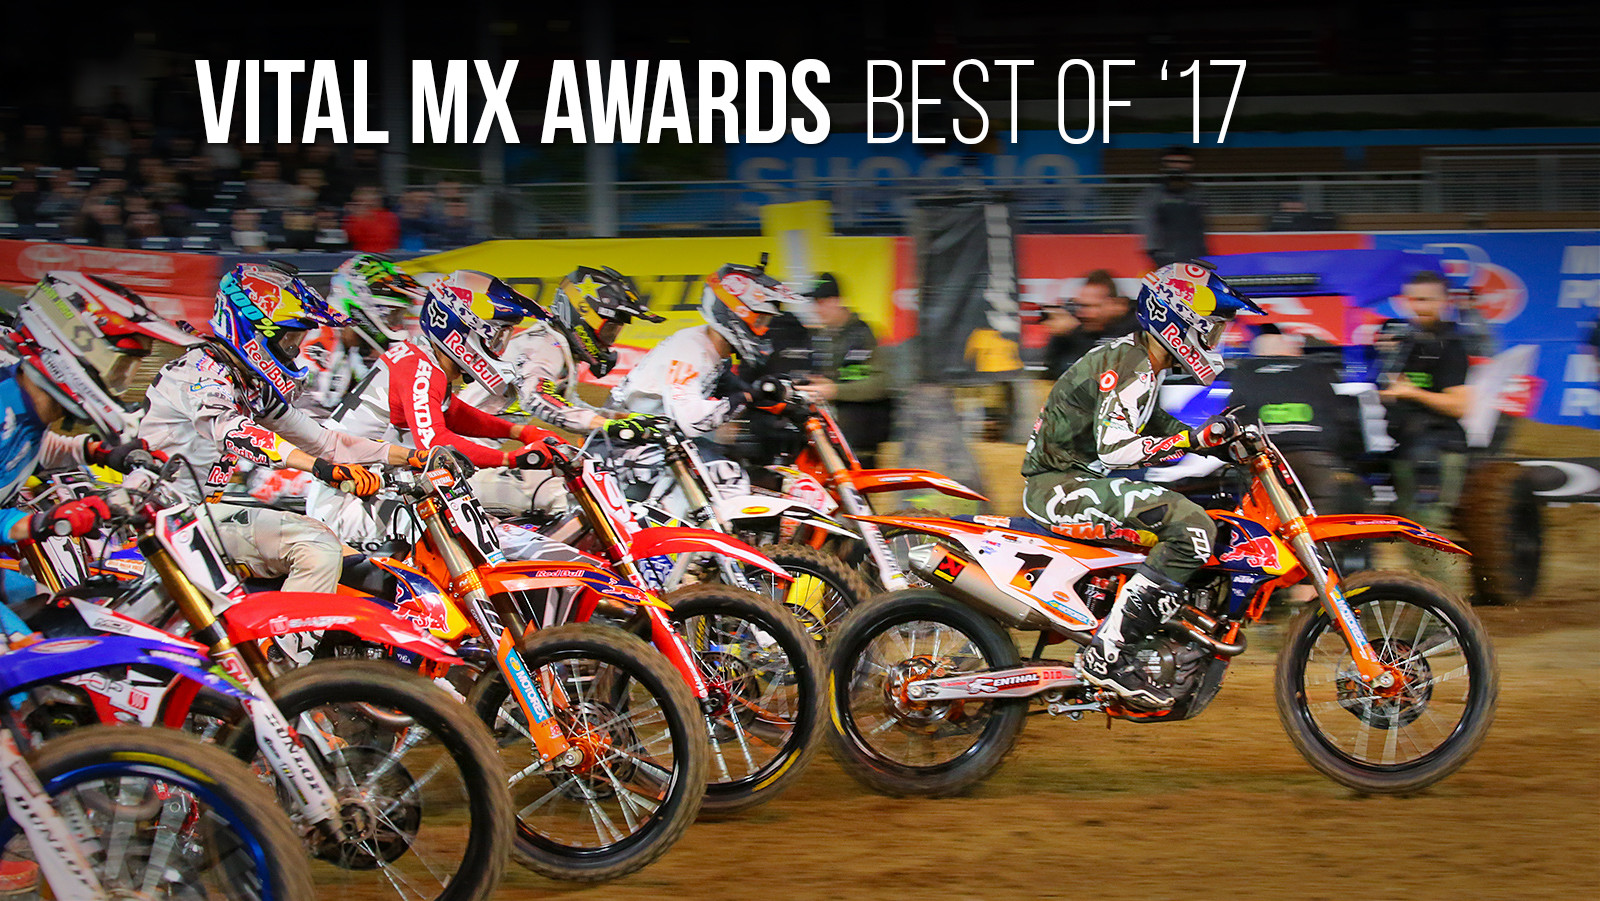 Vital MX Awards: The Best of '17